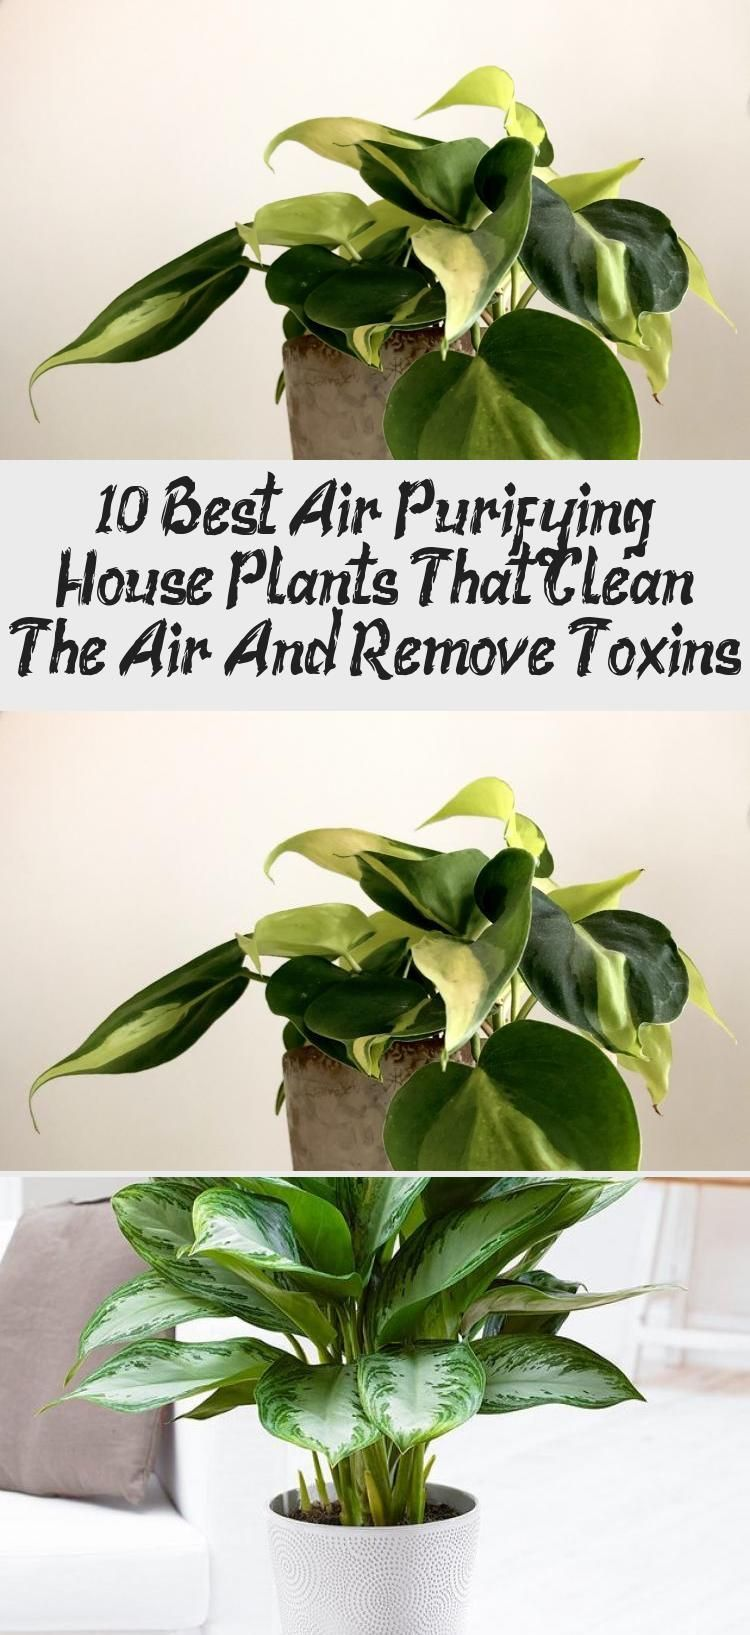 10 Best Air Purifying House Plants That Clean The Air And